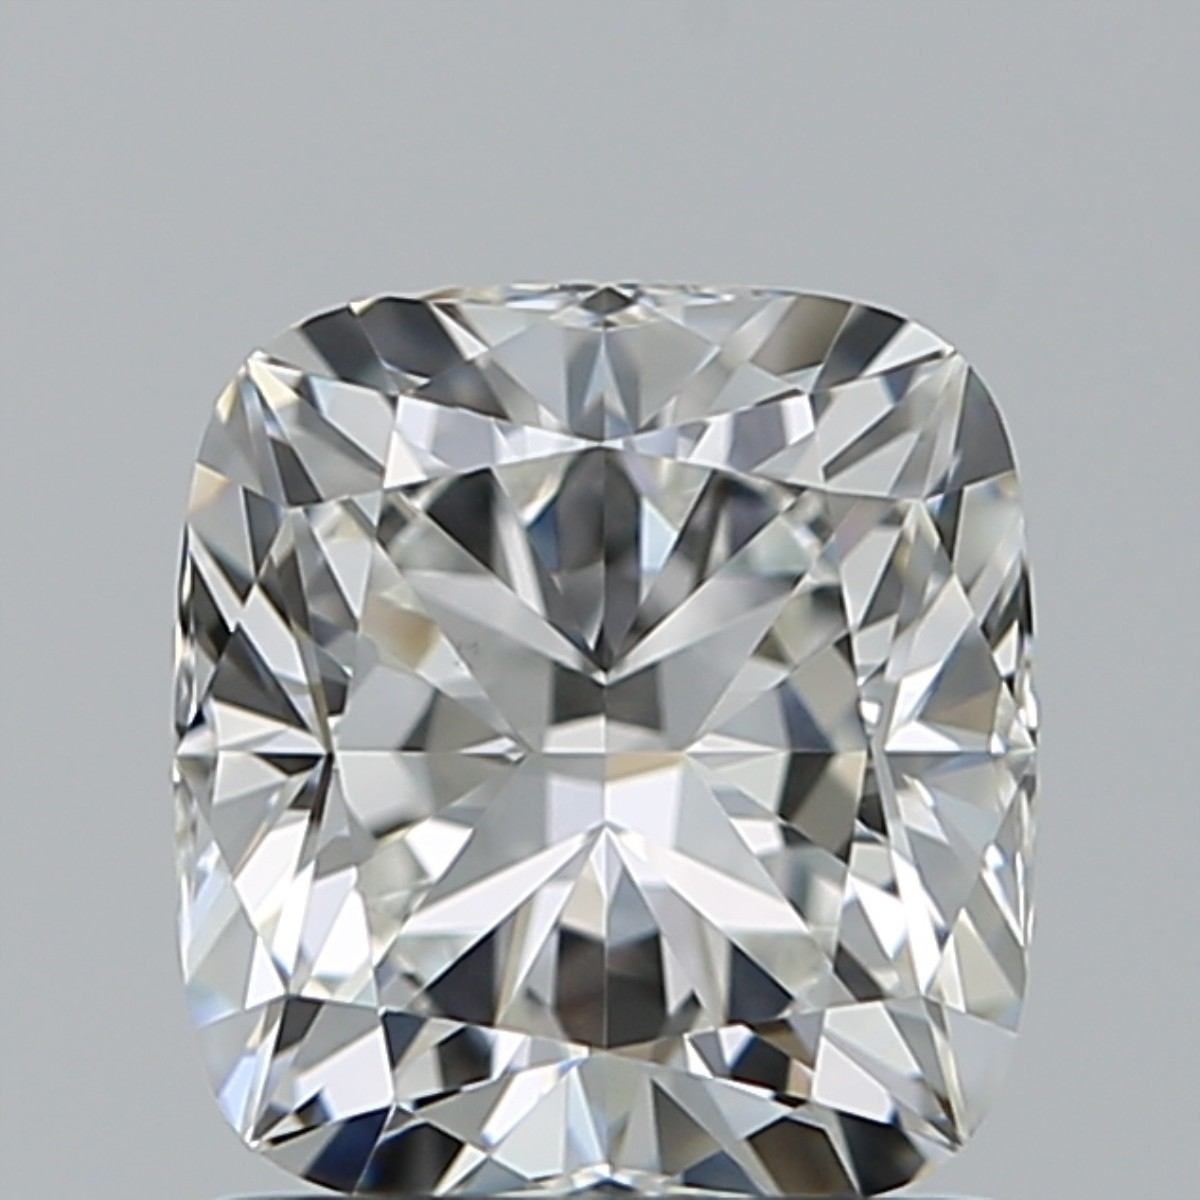 1.21 Carat Cushion Diamond (G/VS1)